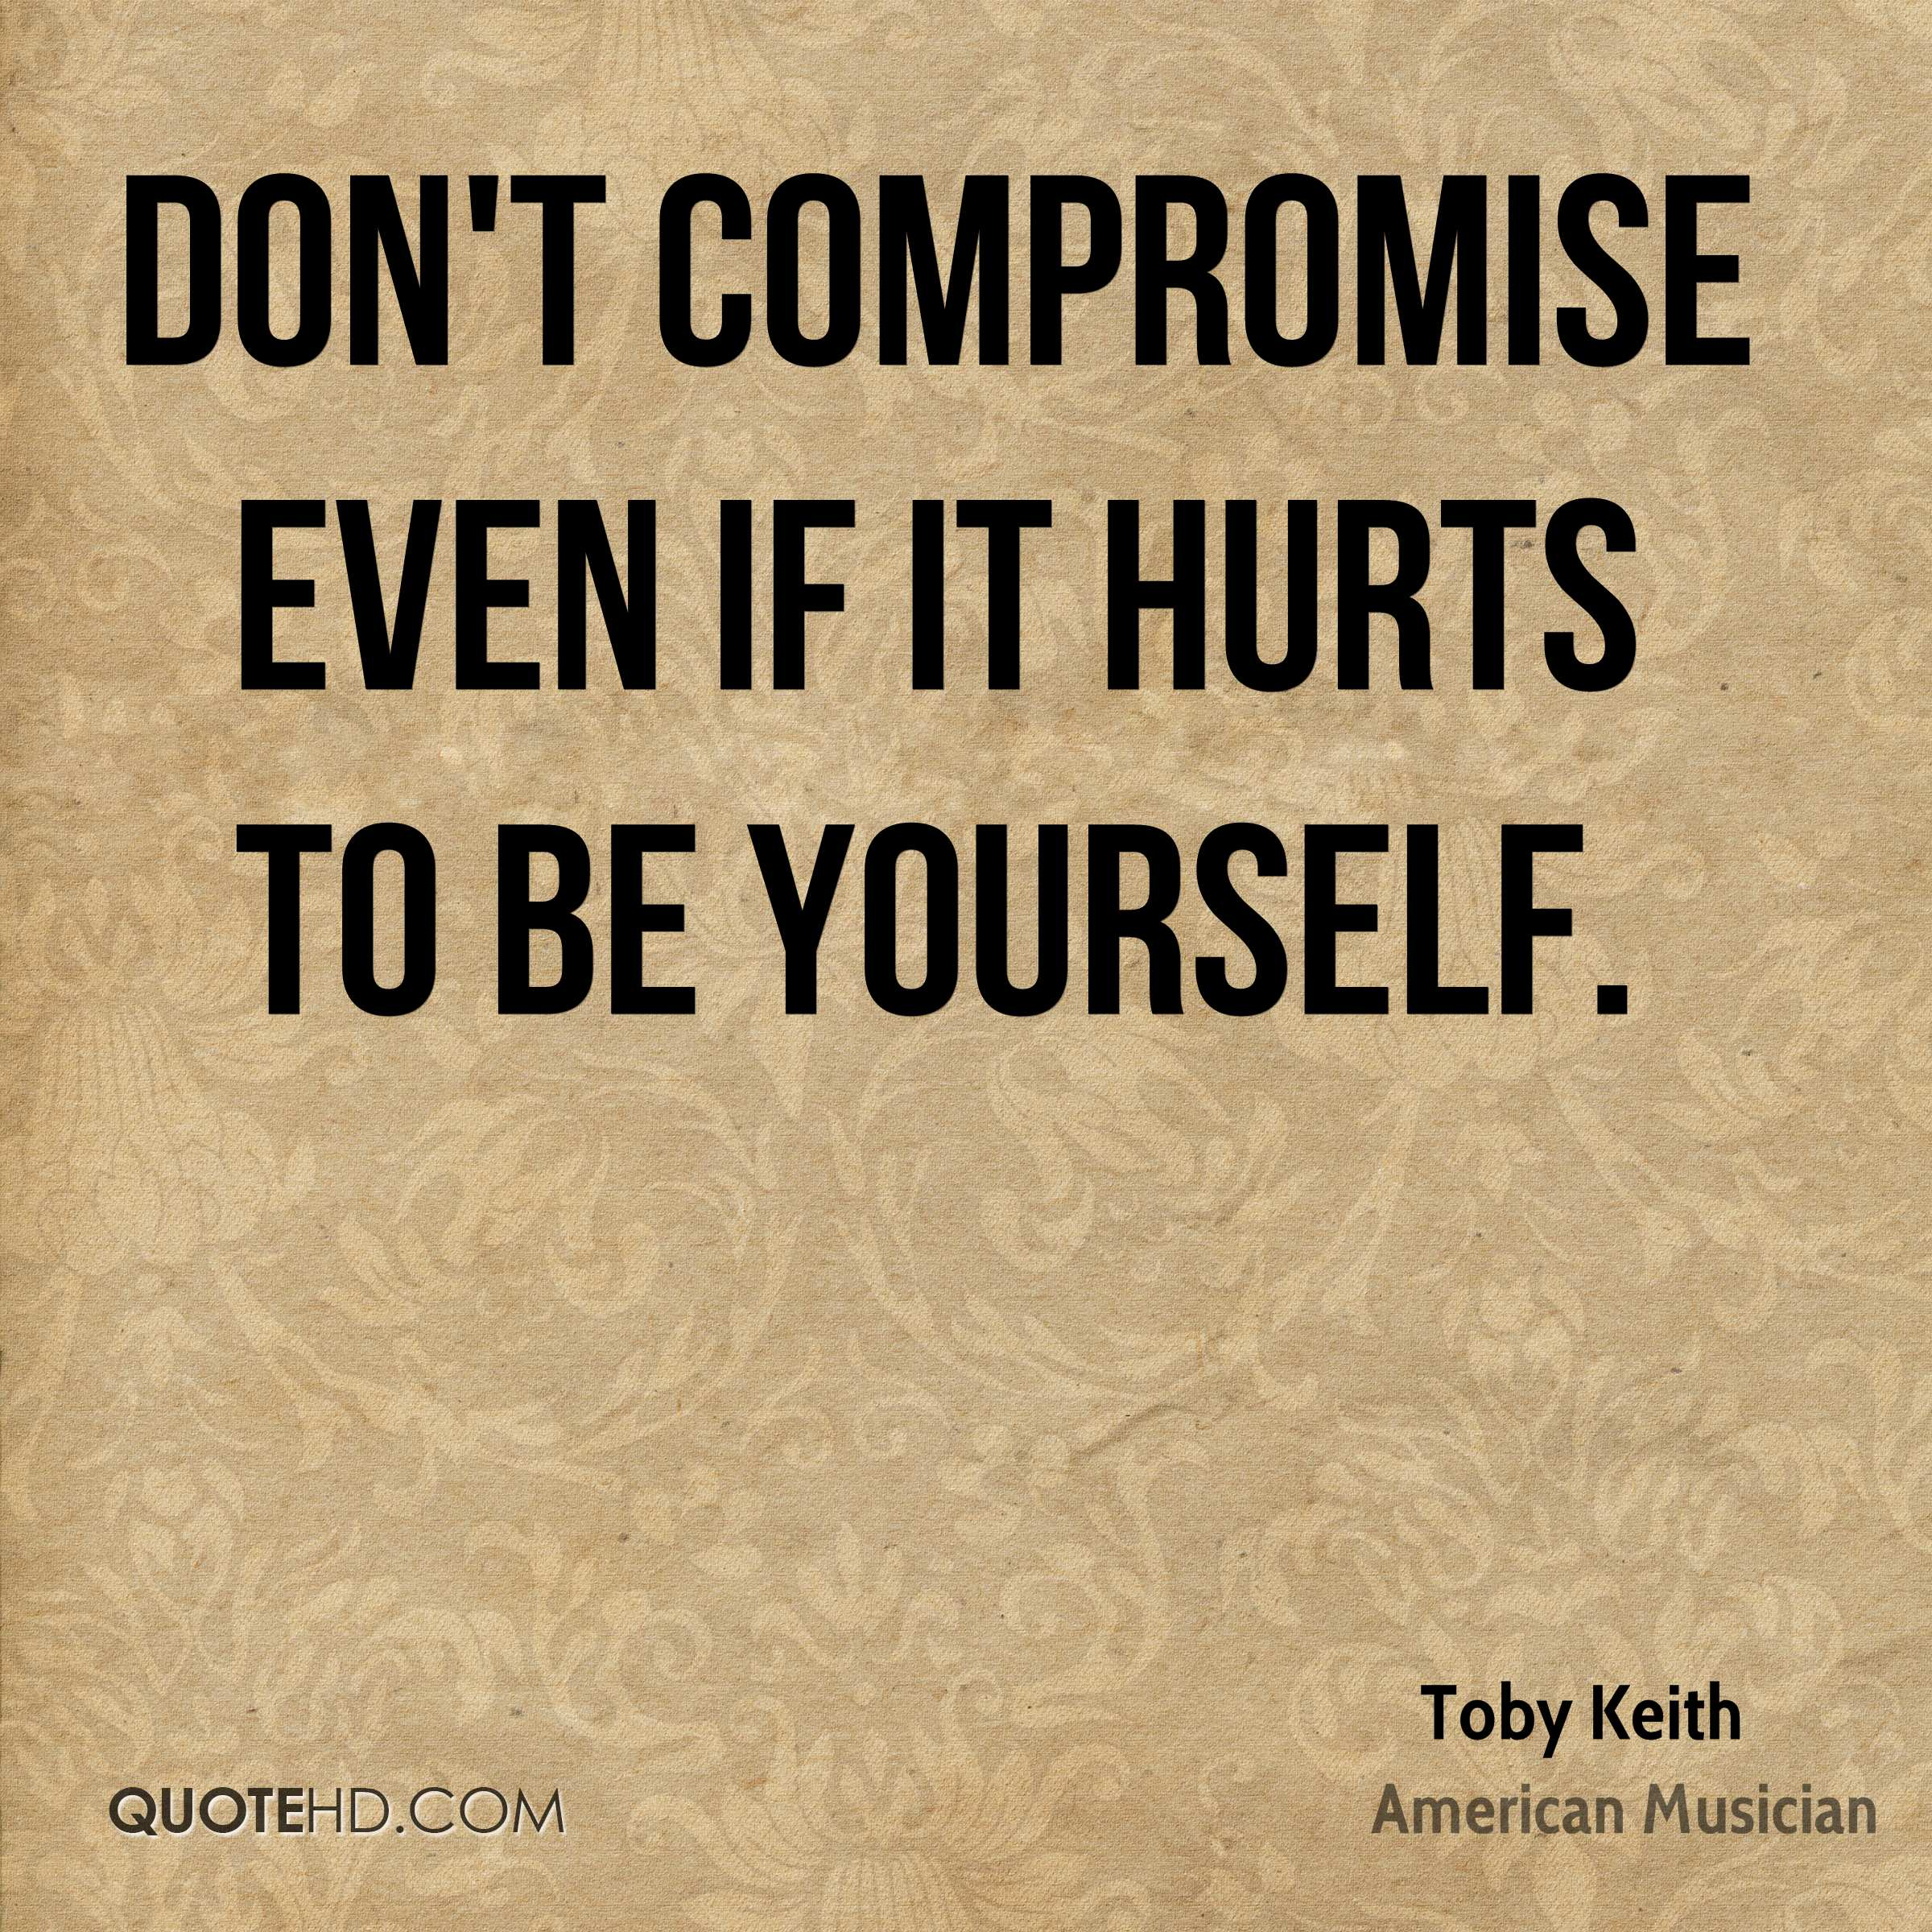 Don't compromise even if it hurts to be yourself. Toby Keith